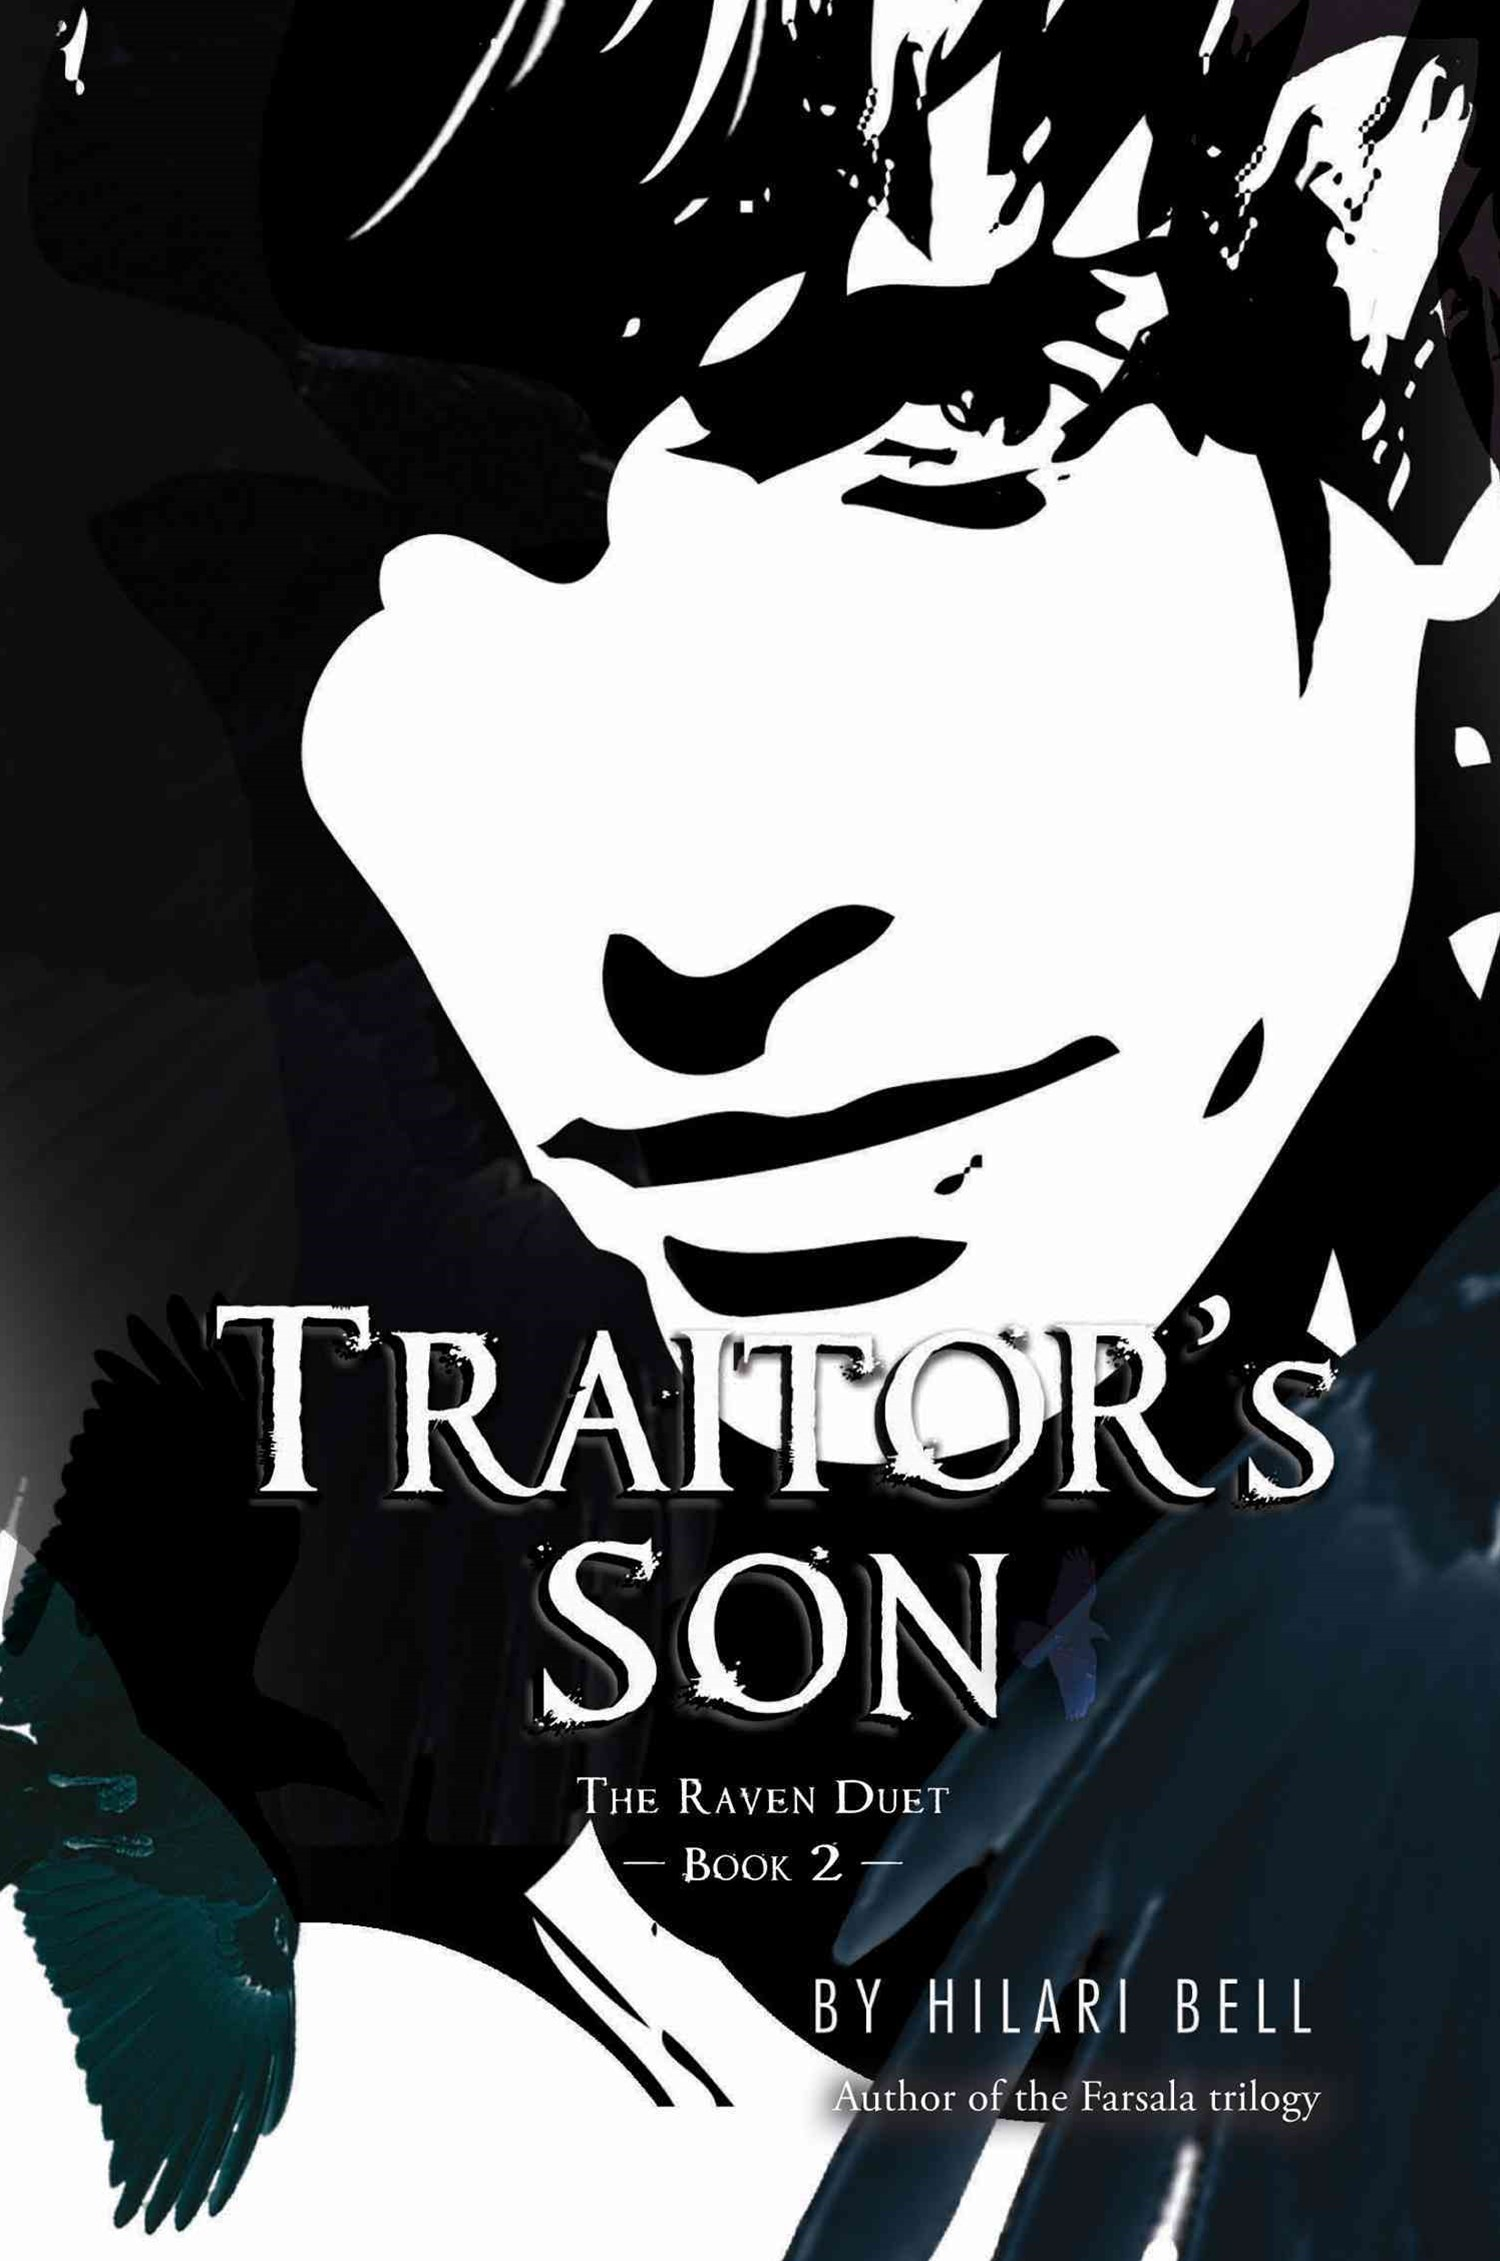 Traitor's Son: The Raven Duet Book 2